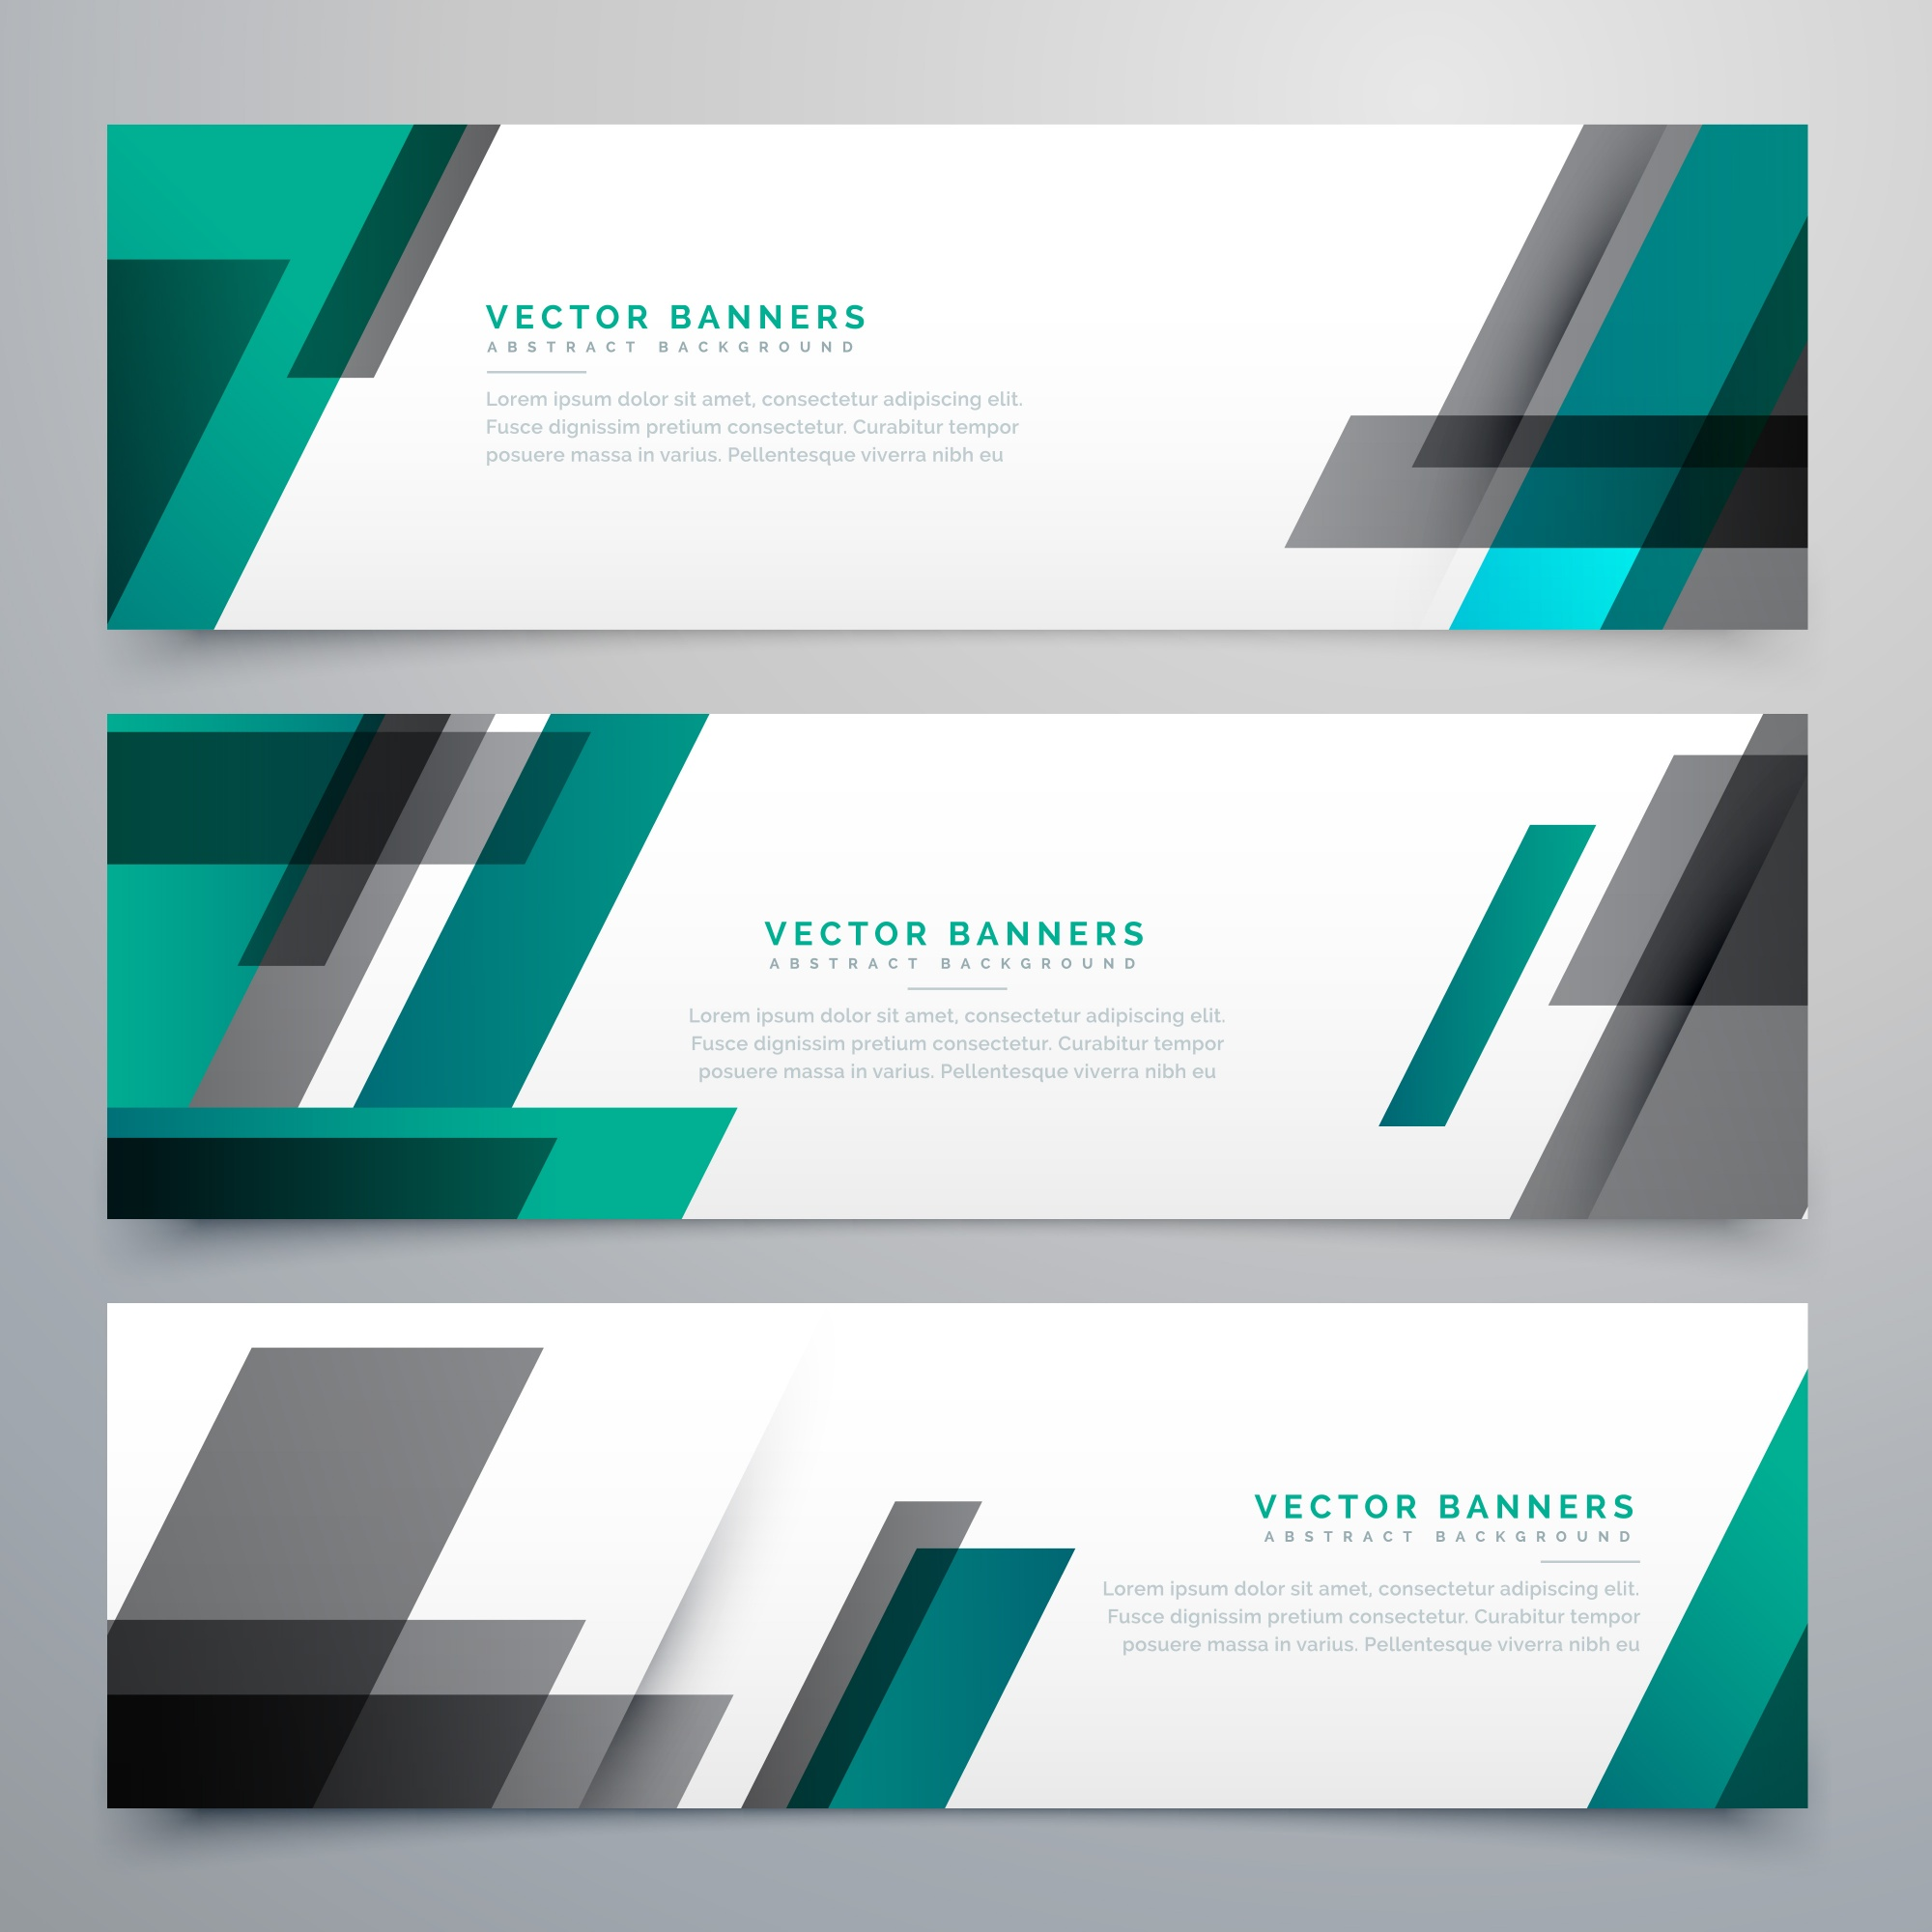 Geometric banners, teal and black